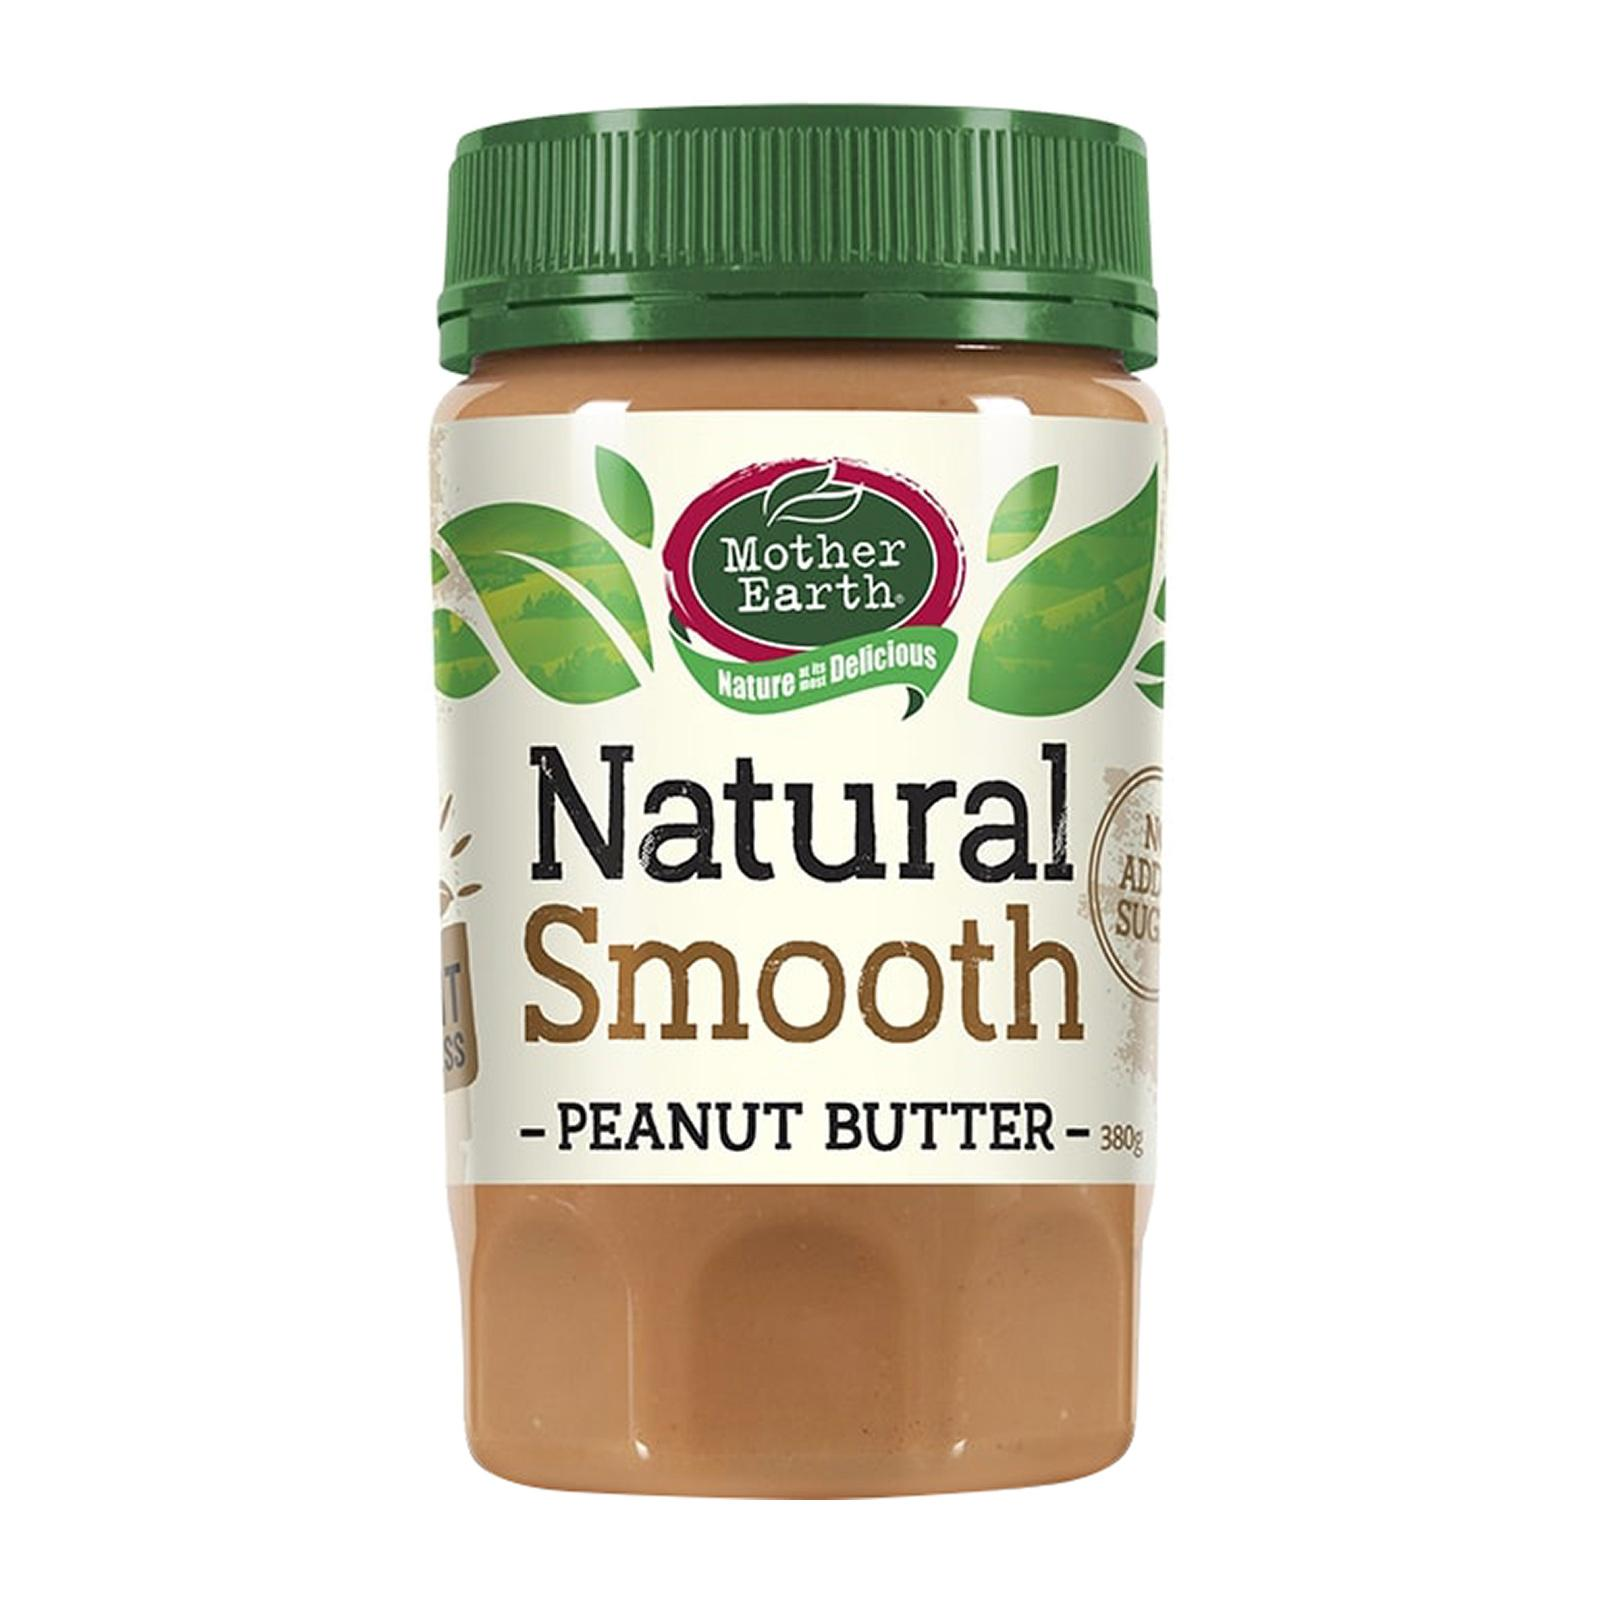 Mother Earth Peanut Butter Smooth - by Optimo Foods